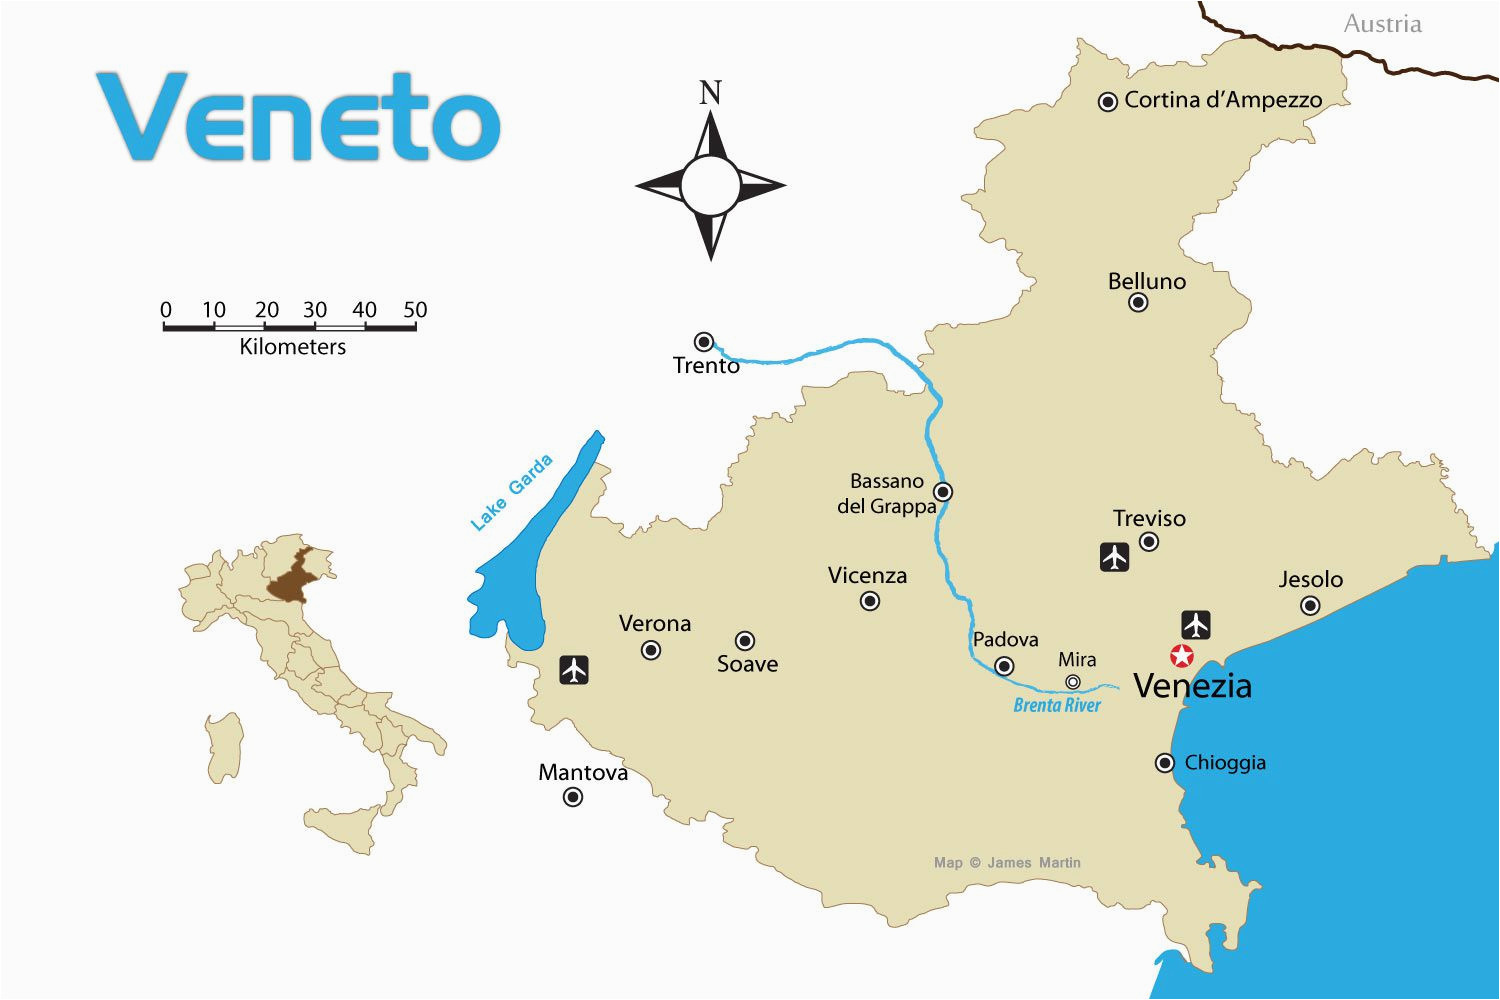 veneto region of northern italy tourist map with cities